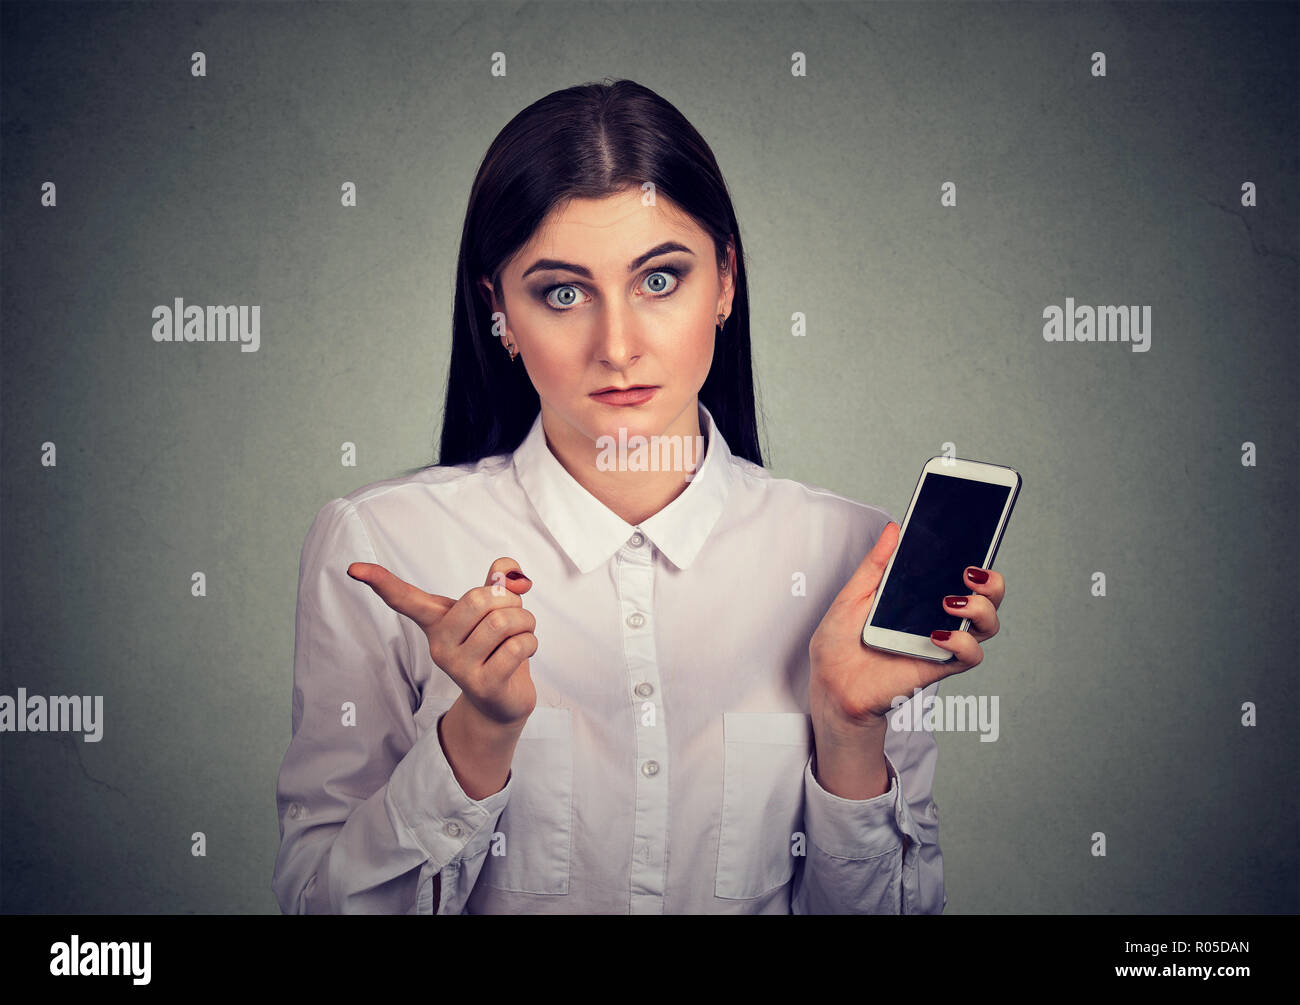 Formal irritated woman in white shirt holding smartphone and shaking with finger giving bad review on gray background - Stock Image